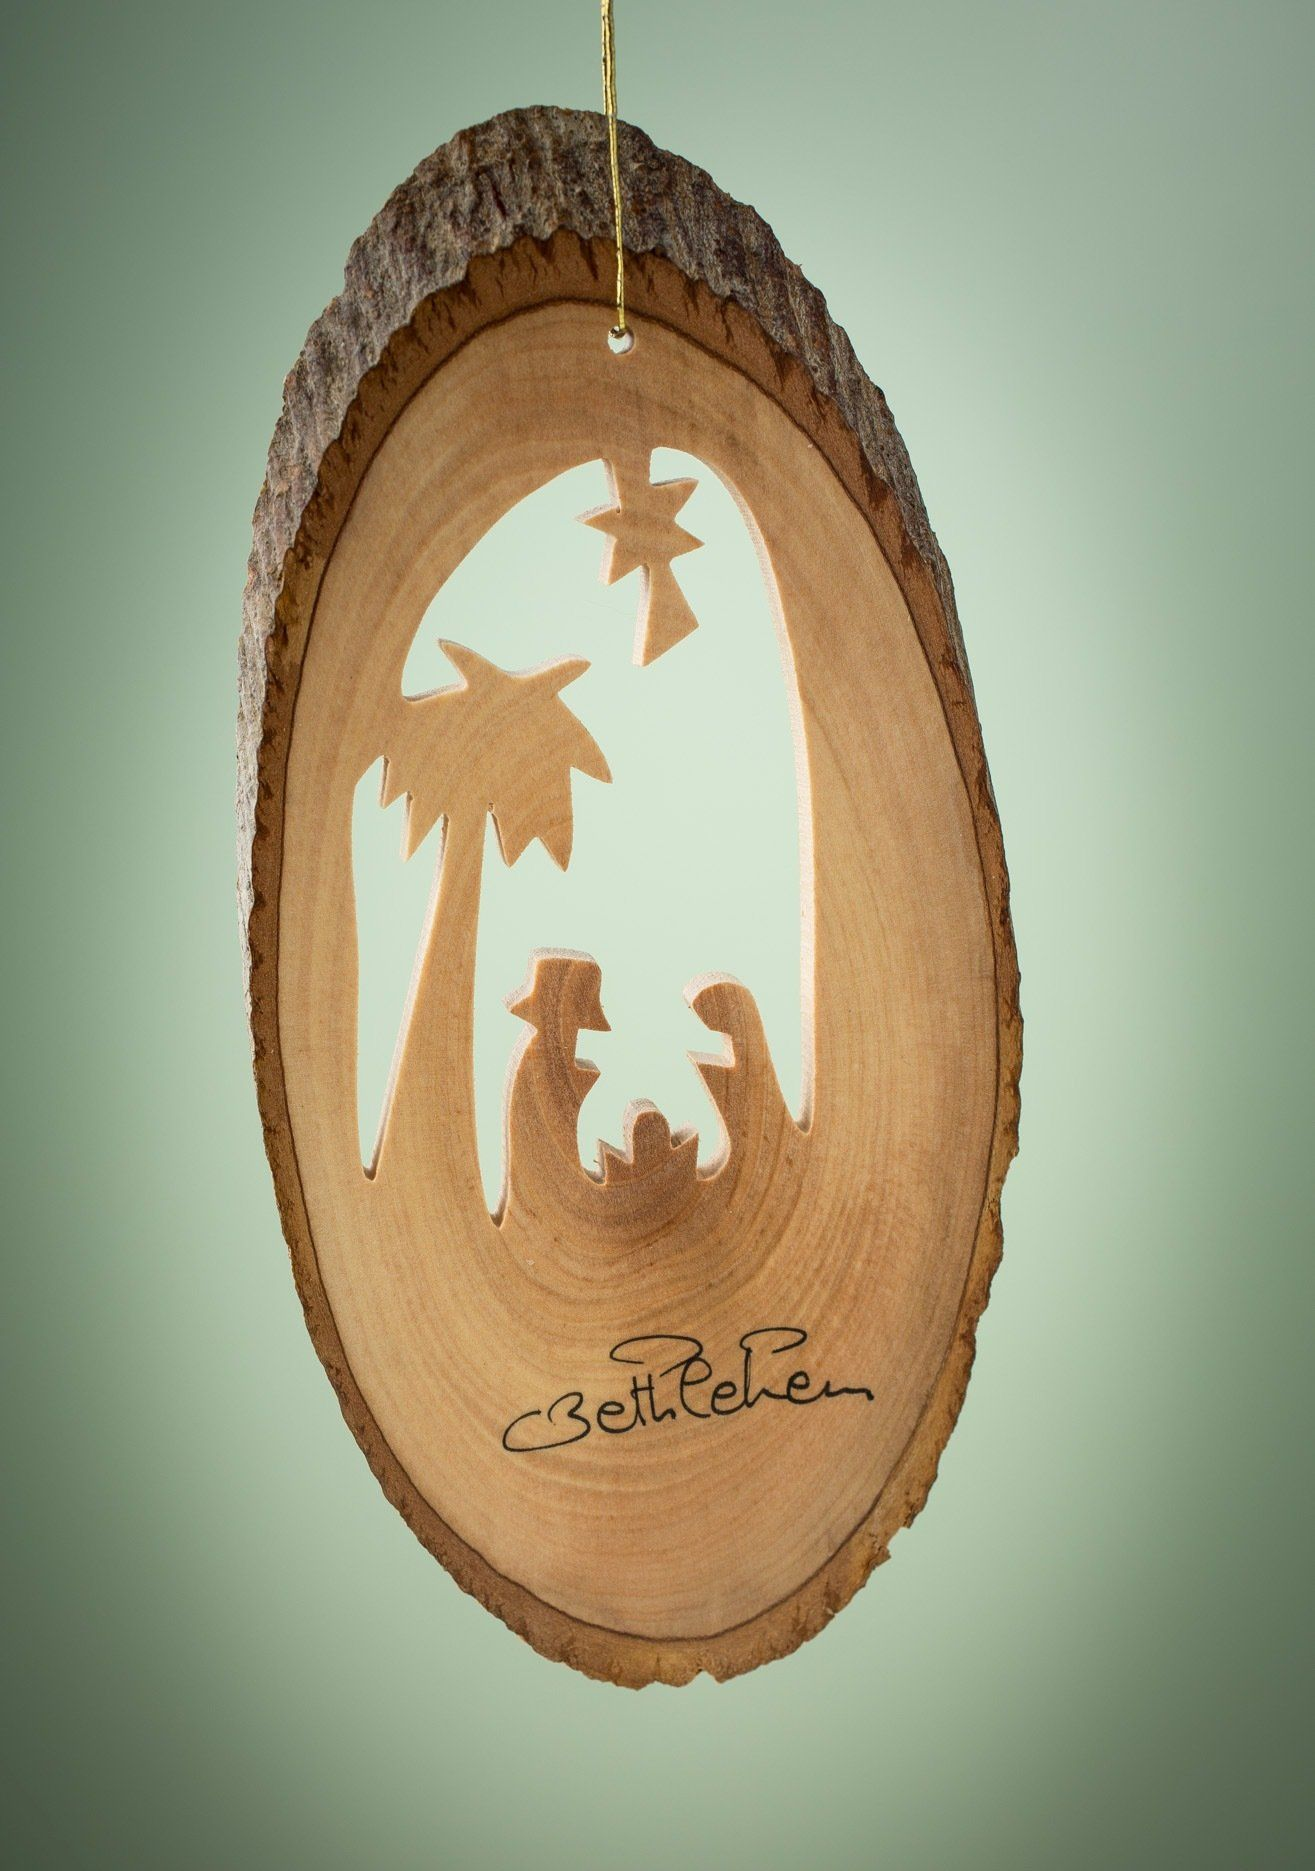 Olive Wood Nativity With Palm Ornament Wood Ornaments Christmas Wood Christmas Tree Ornaments